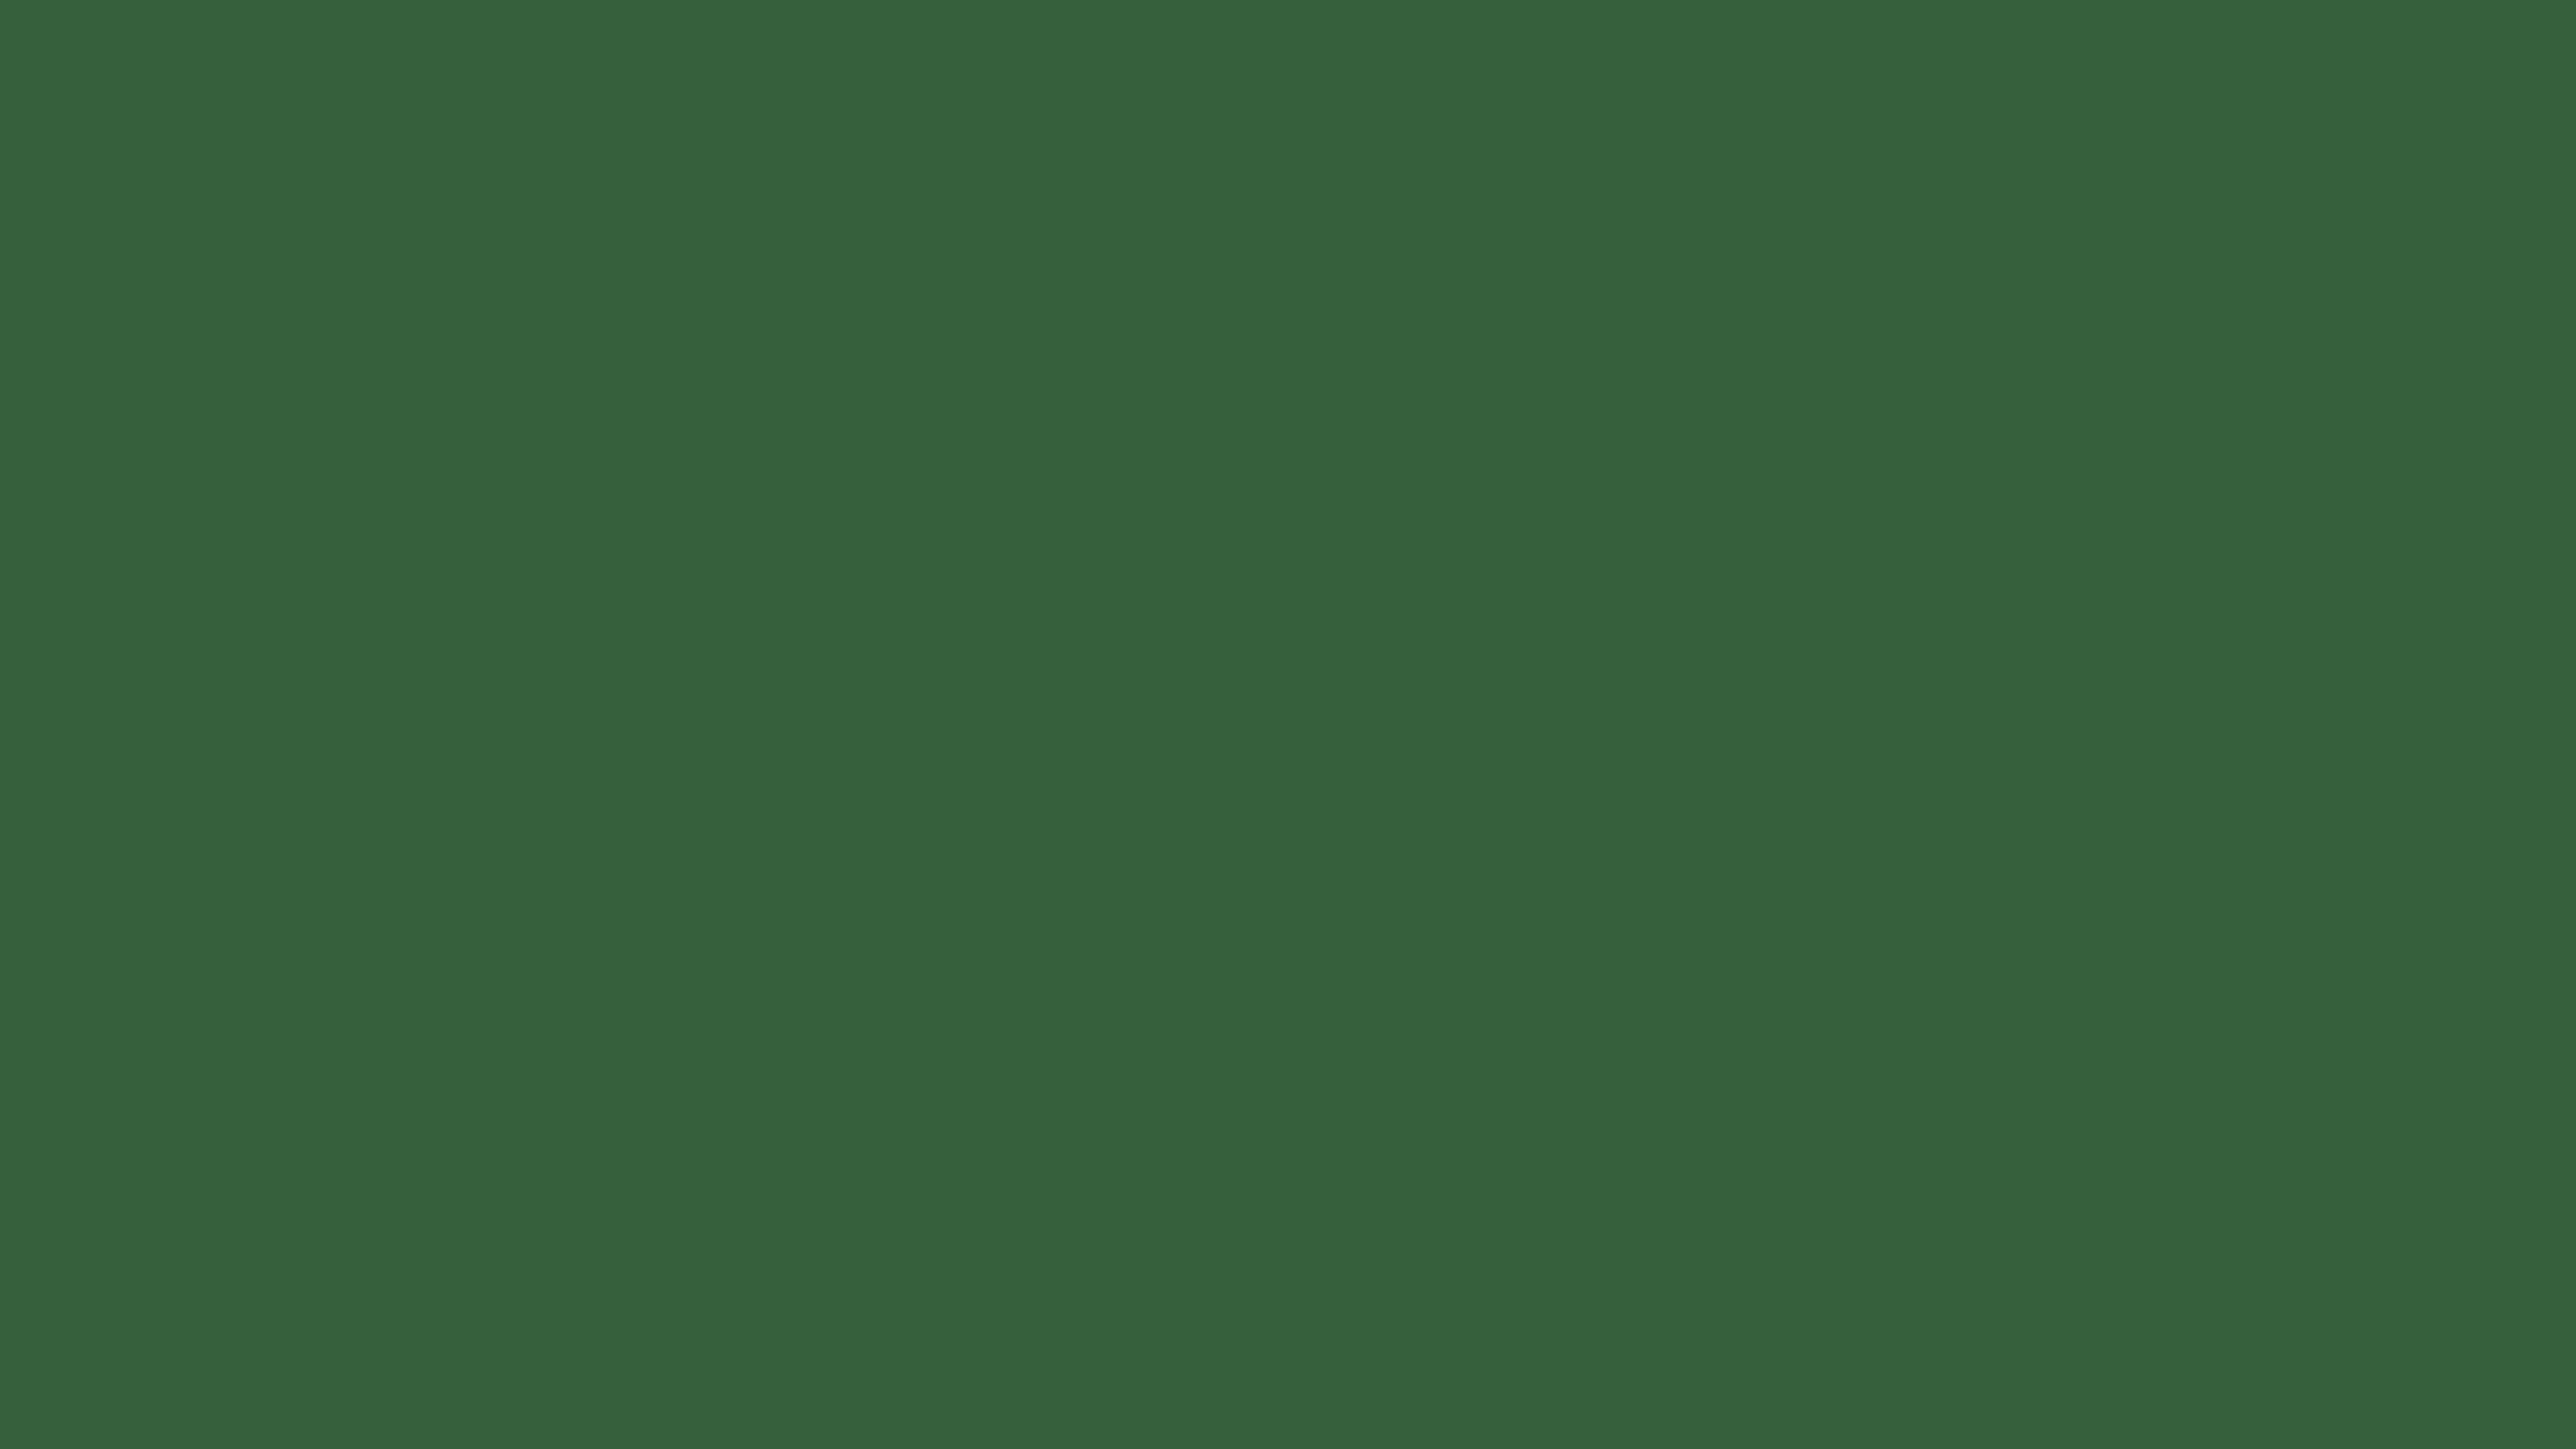 4096x2304 Hunter Green Solid Color Background